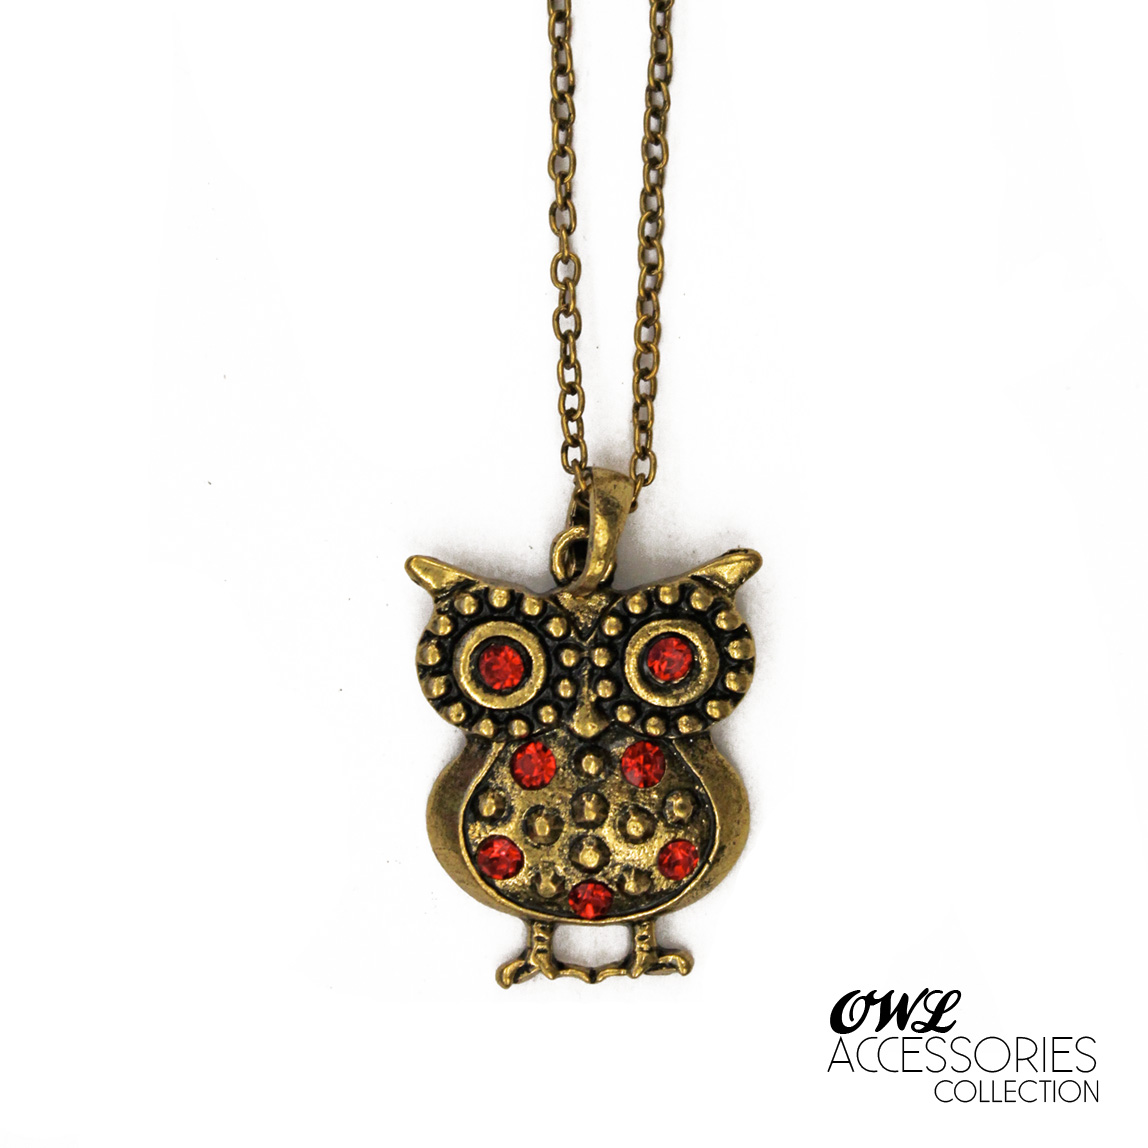 owl accessories collection shasa